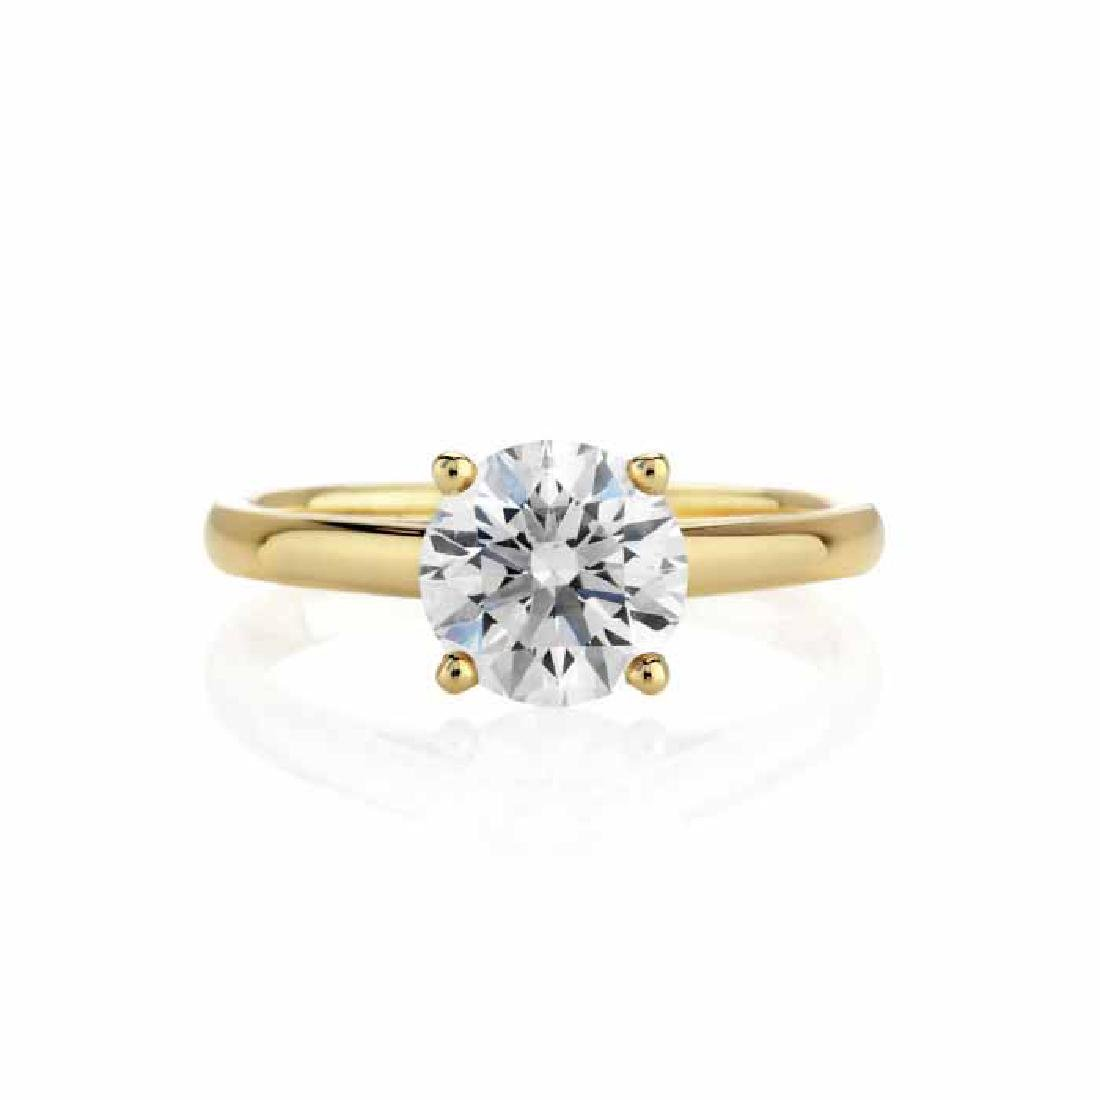 CERTIFIED 1.01 CTW F/SI2 ROUND DIAMOND SOLITAIRE RING I